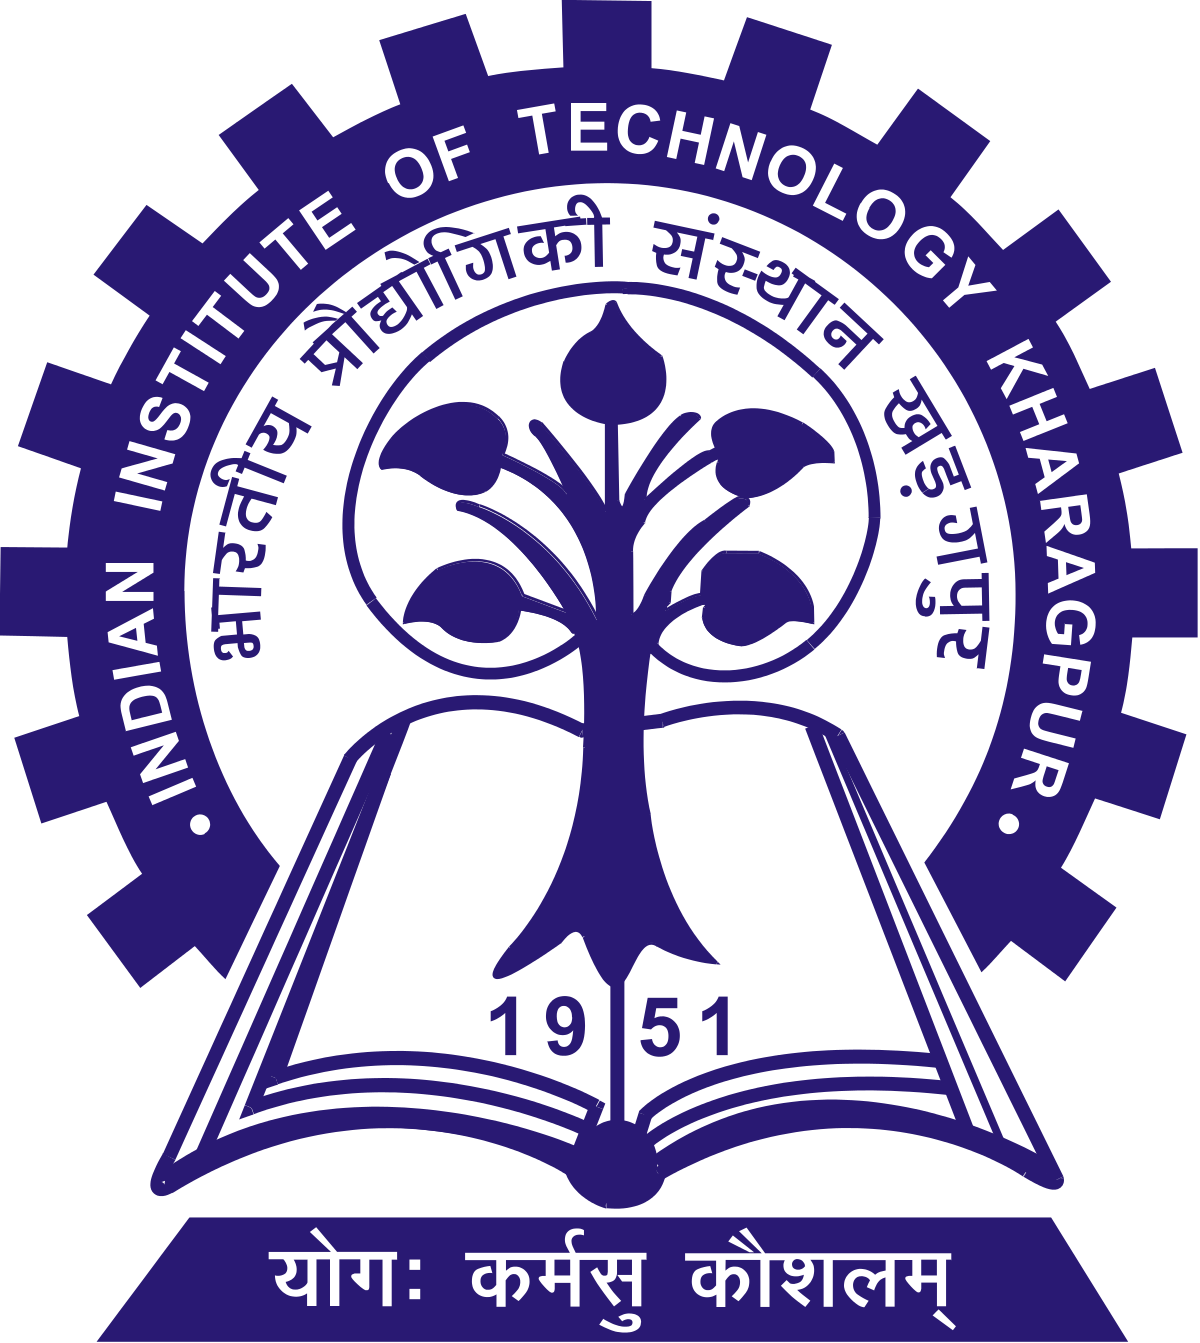 Educational vector technical education. Indian institute of technology